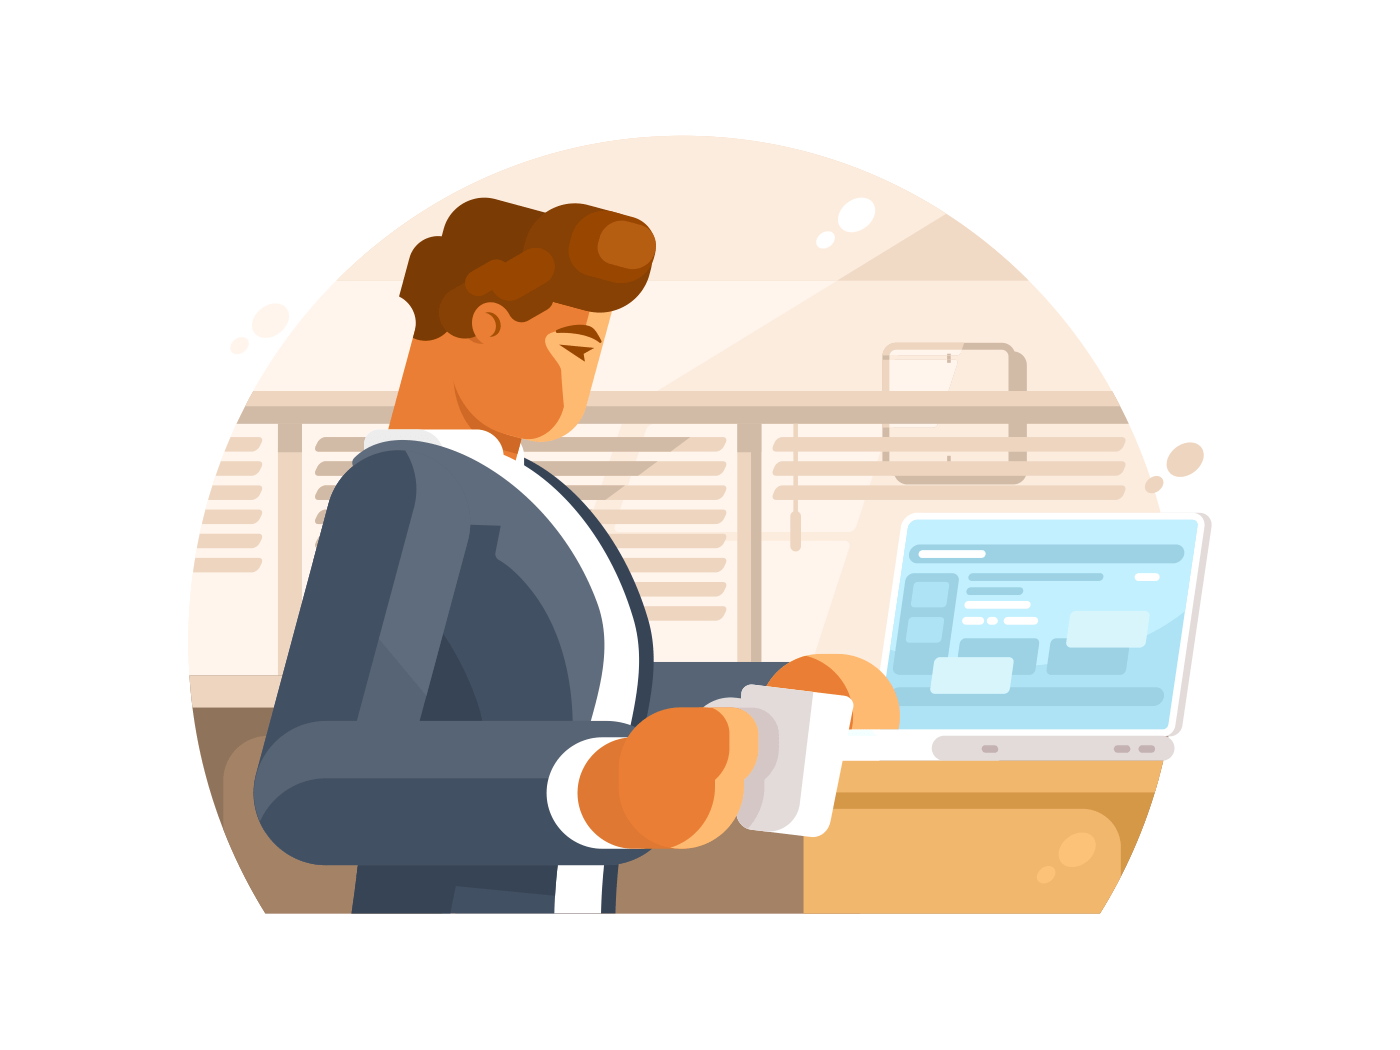 Confident businessman in workplace illustration